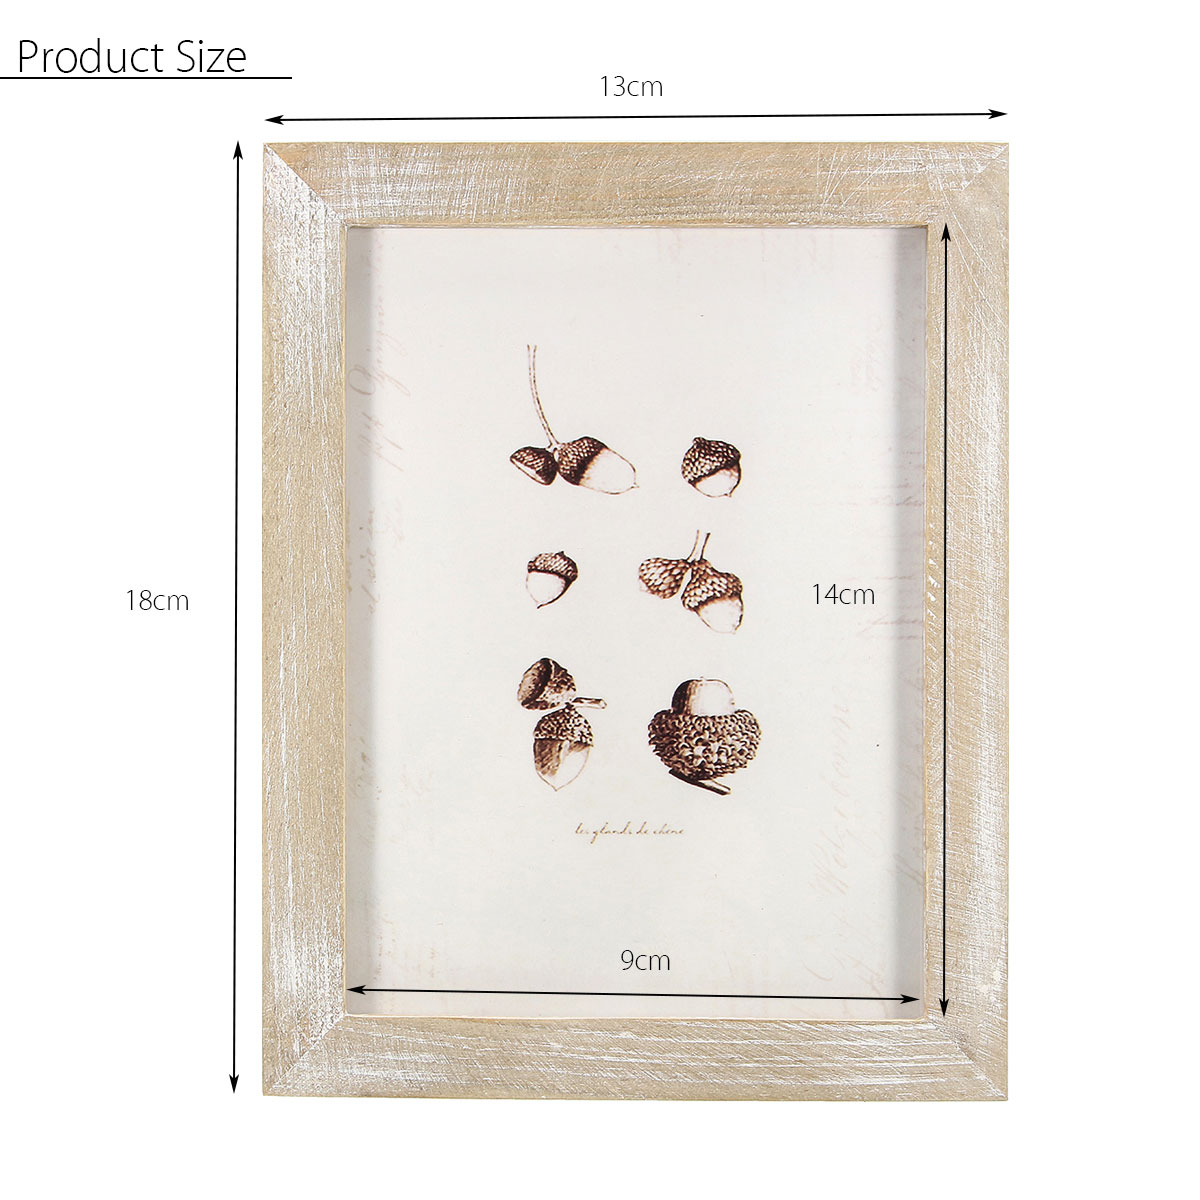 18x13cm/14x9cm Vintage Solid Wood Photo Picture Frame Wall Hanging Shabby Chic Room Decoration